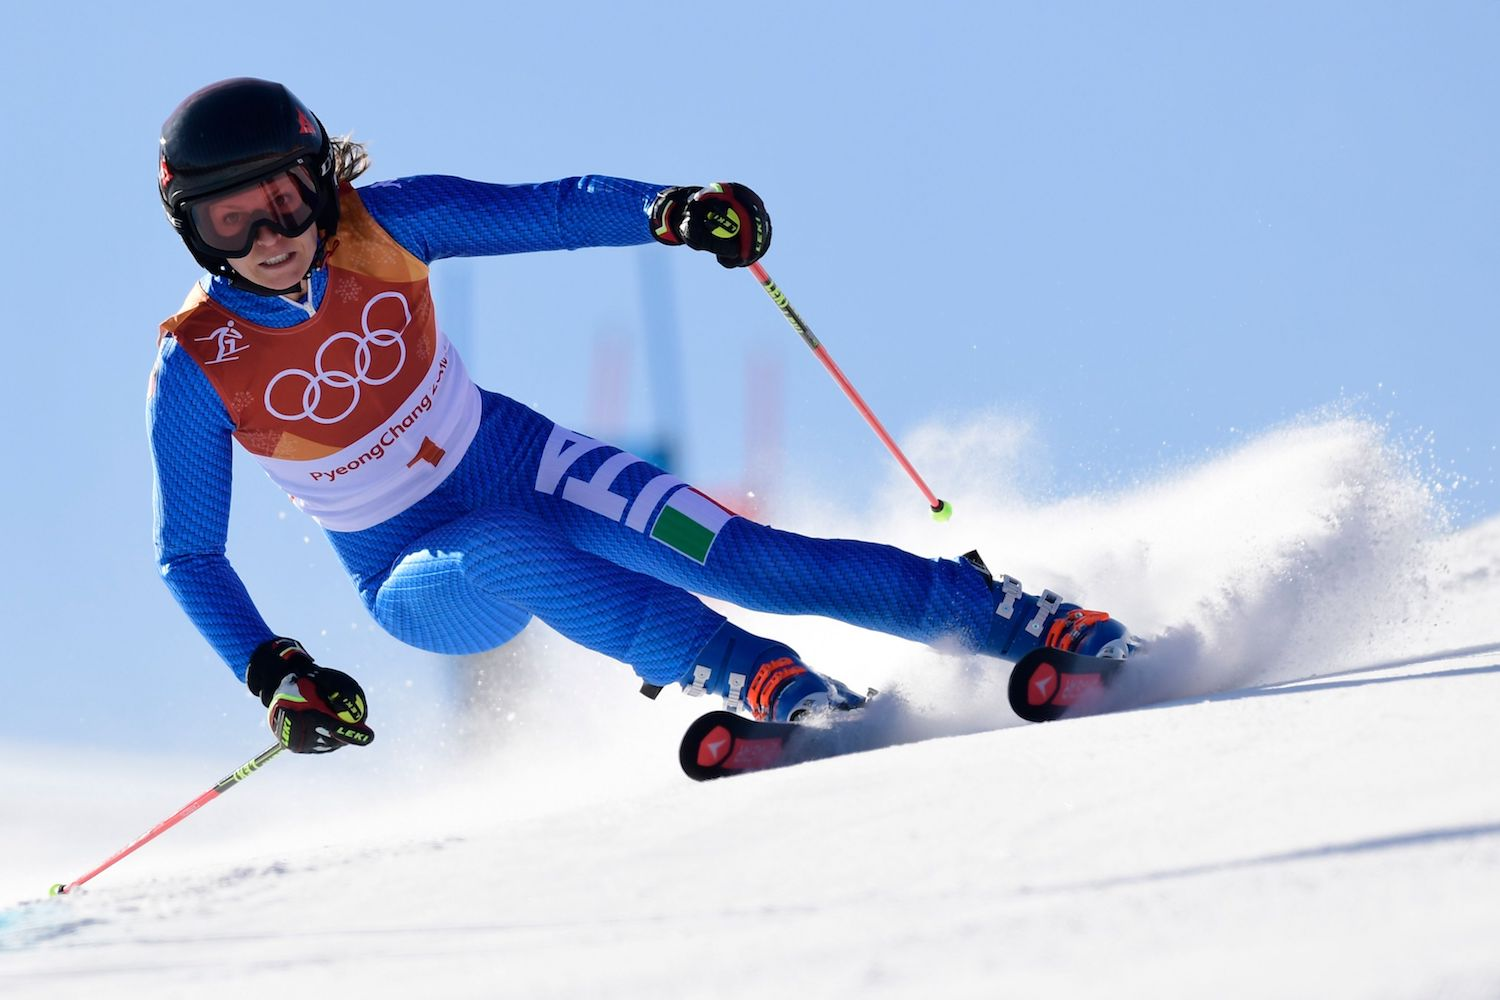 TOPSHOT - Italy's Manuela Moelgg competes in the Women's Giant Slalom at the Yongpyong Alpine Centre during the Pyeongchang 2018 Winter Olympic Games in Pyeongchang on February 15, 2018. / AFP PHOTO / JAVIER SORIANO        (Photo credit should read JAVIER SORIANO/AFP/Getty Images)